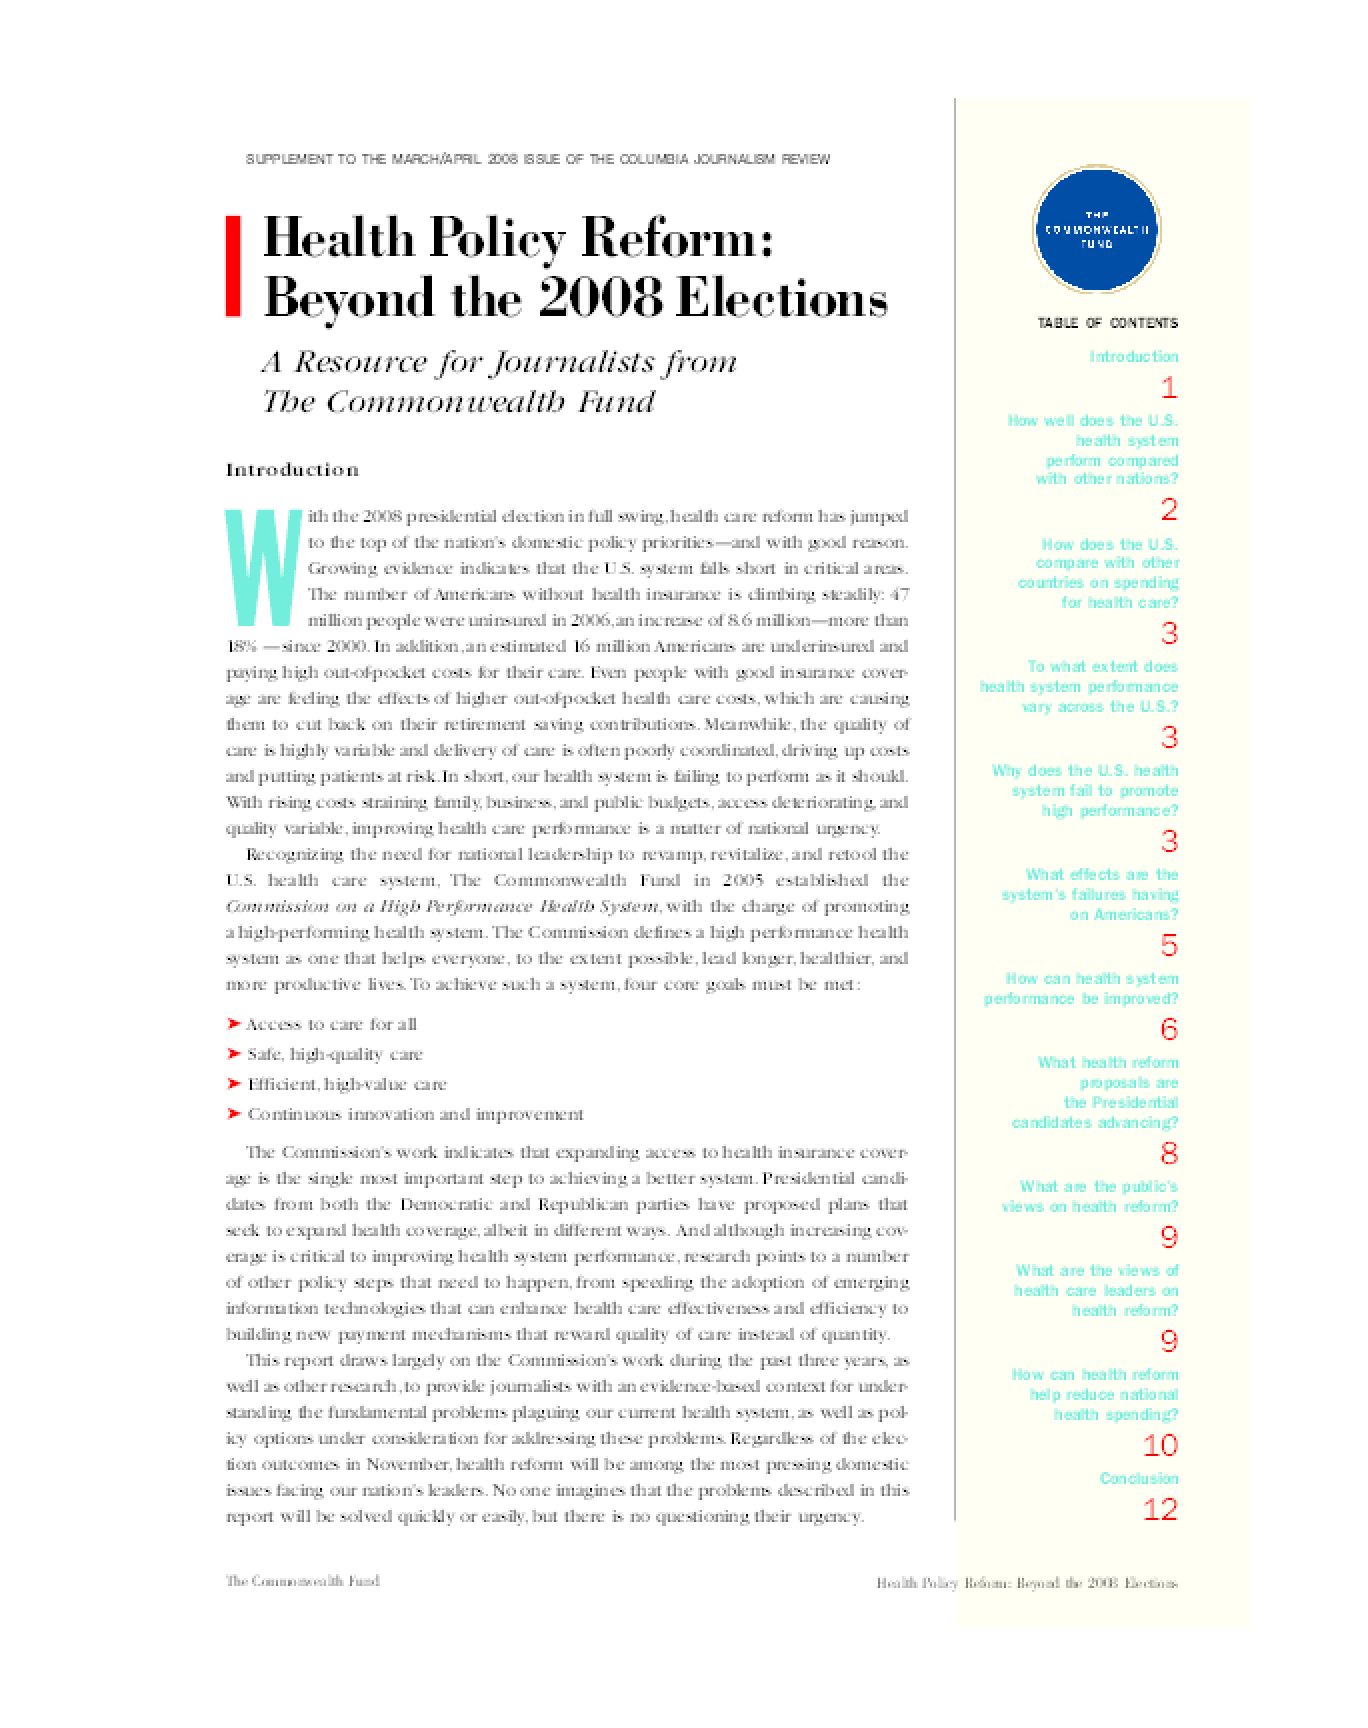 Health Policy Reform: Beyond the 2008 Elections